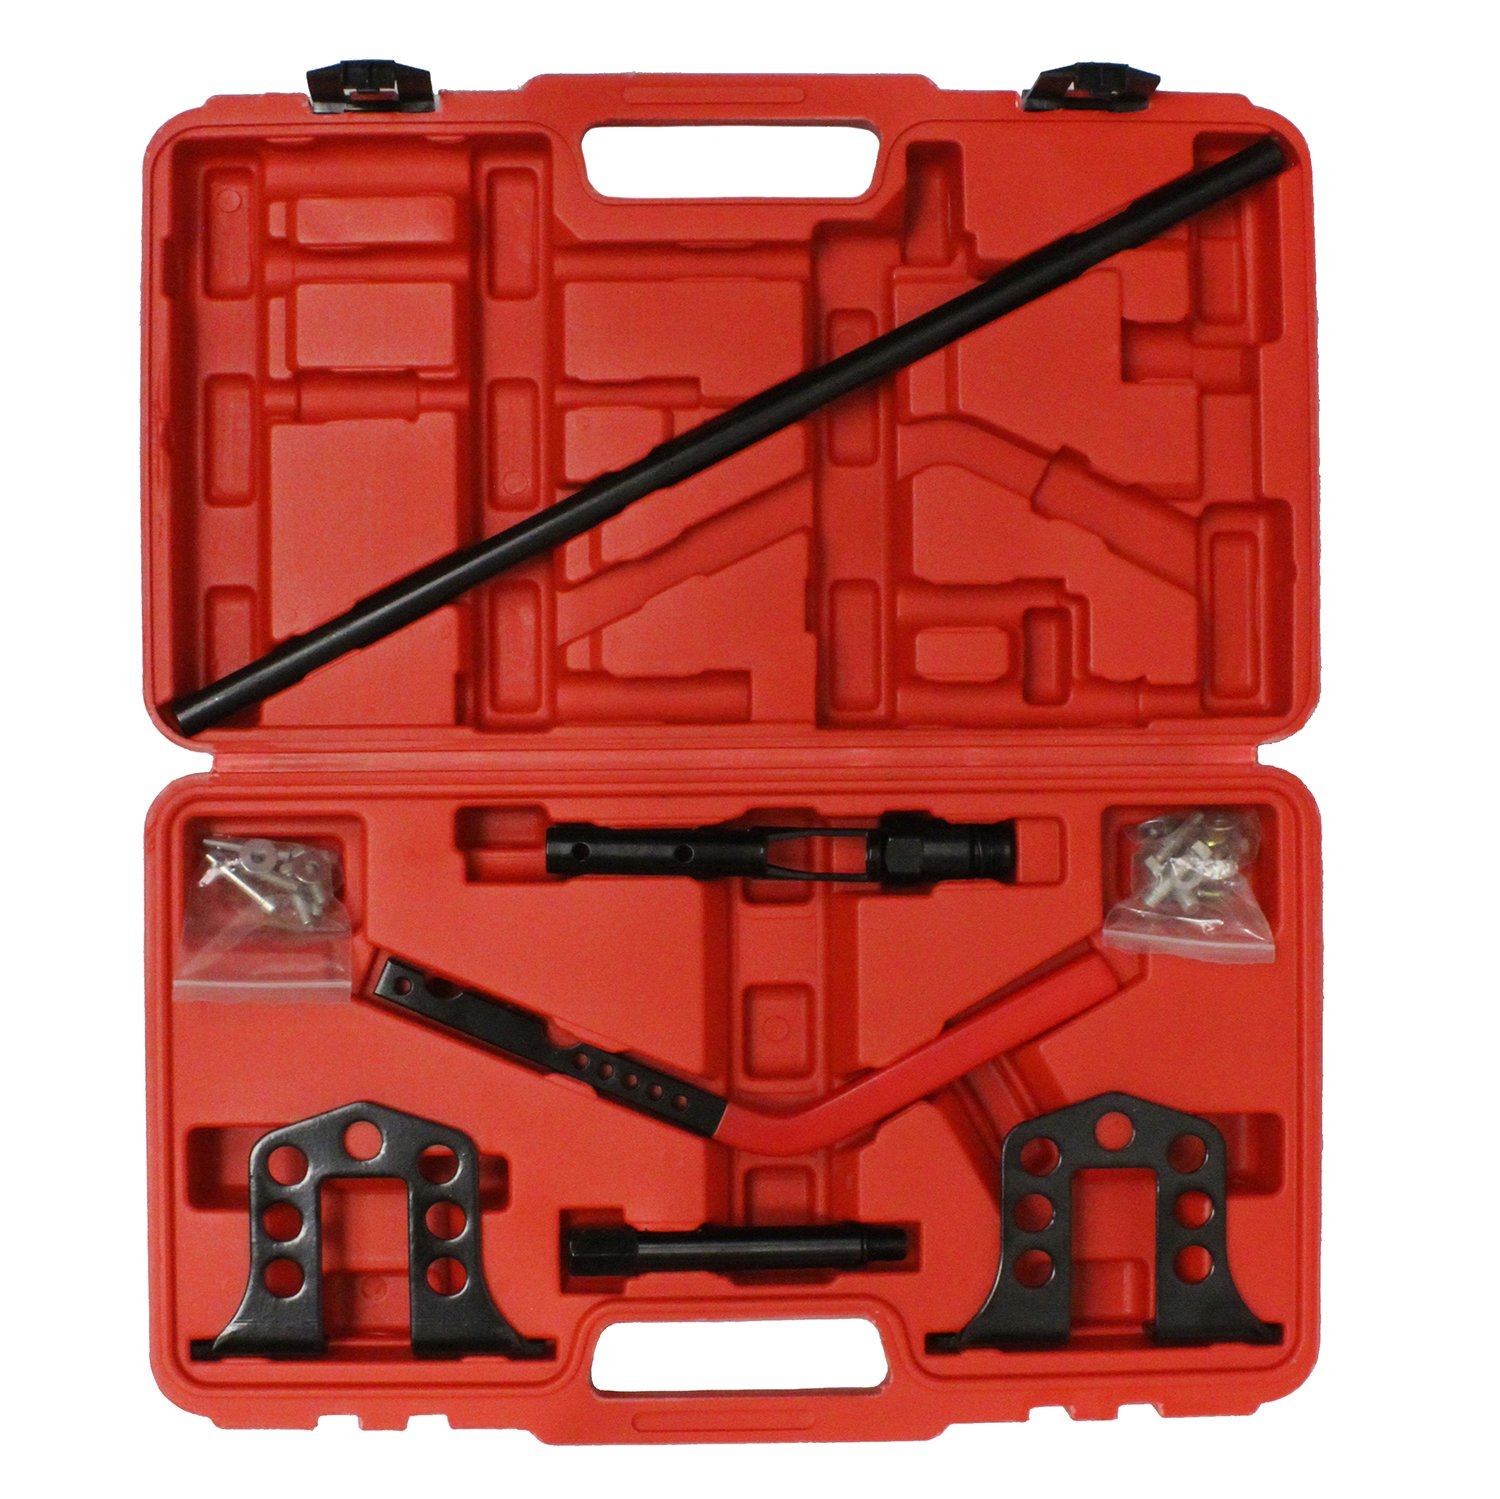 ABN Automotive Engine Overhead Valve Spring Tool Set – Remover, Installer, Compressor Kit for Ford, BMW, Honda, Toyota, VW by ABN (Image #5)